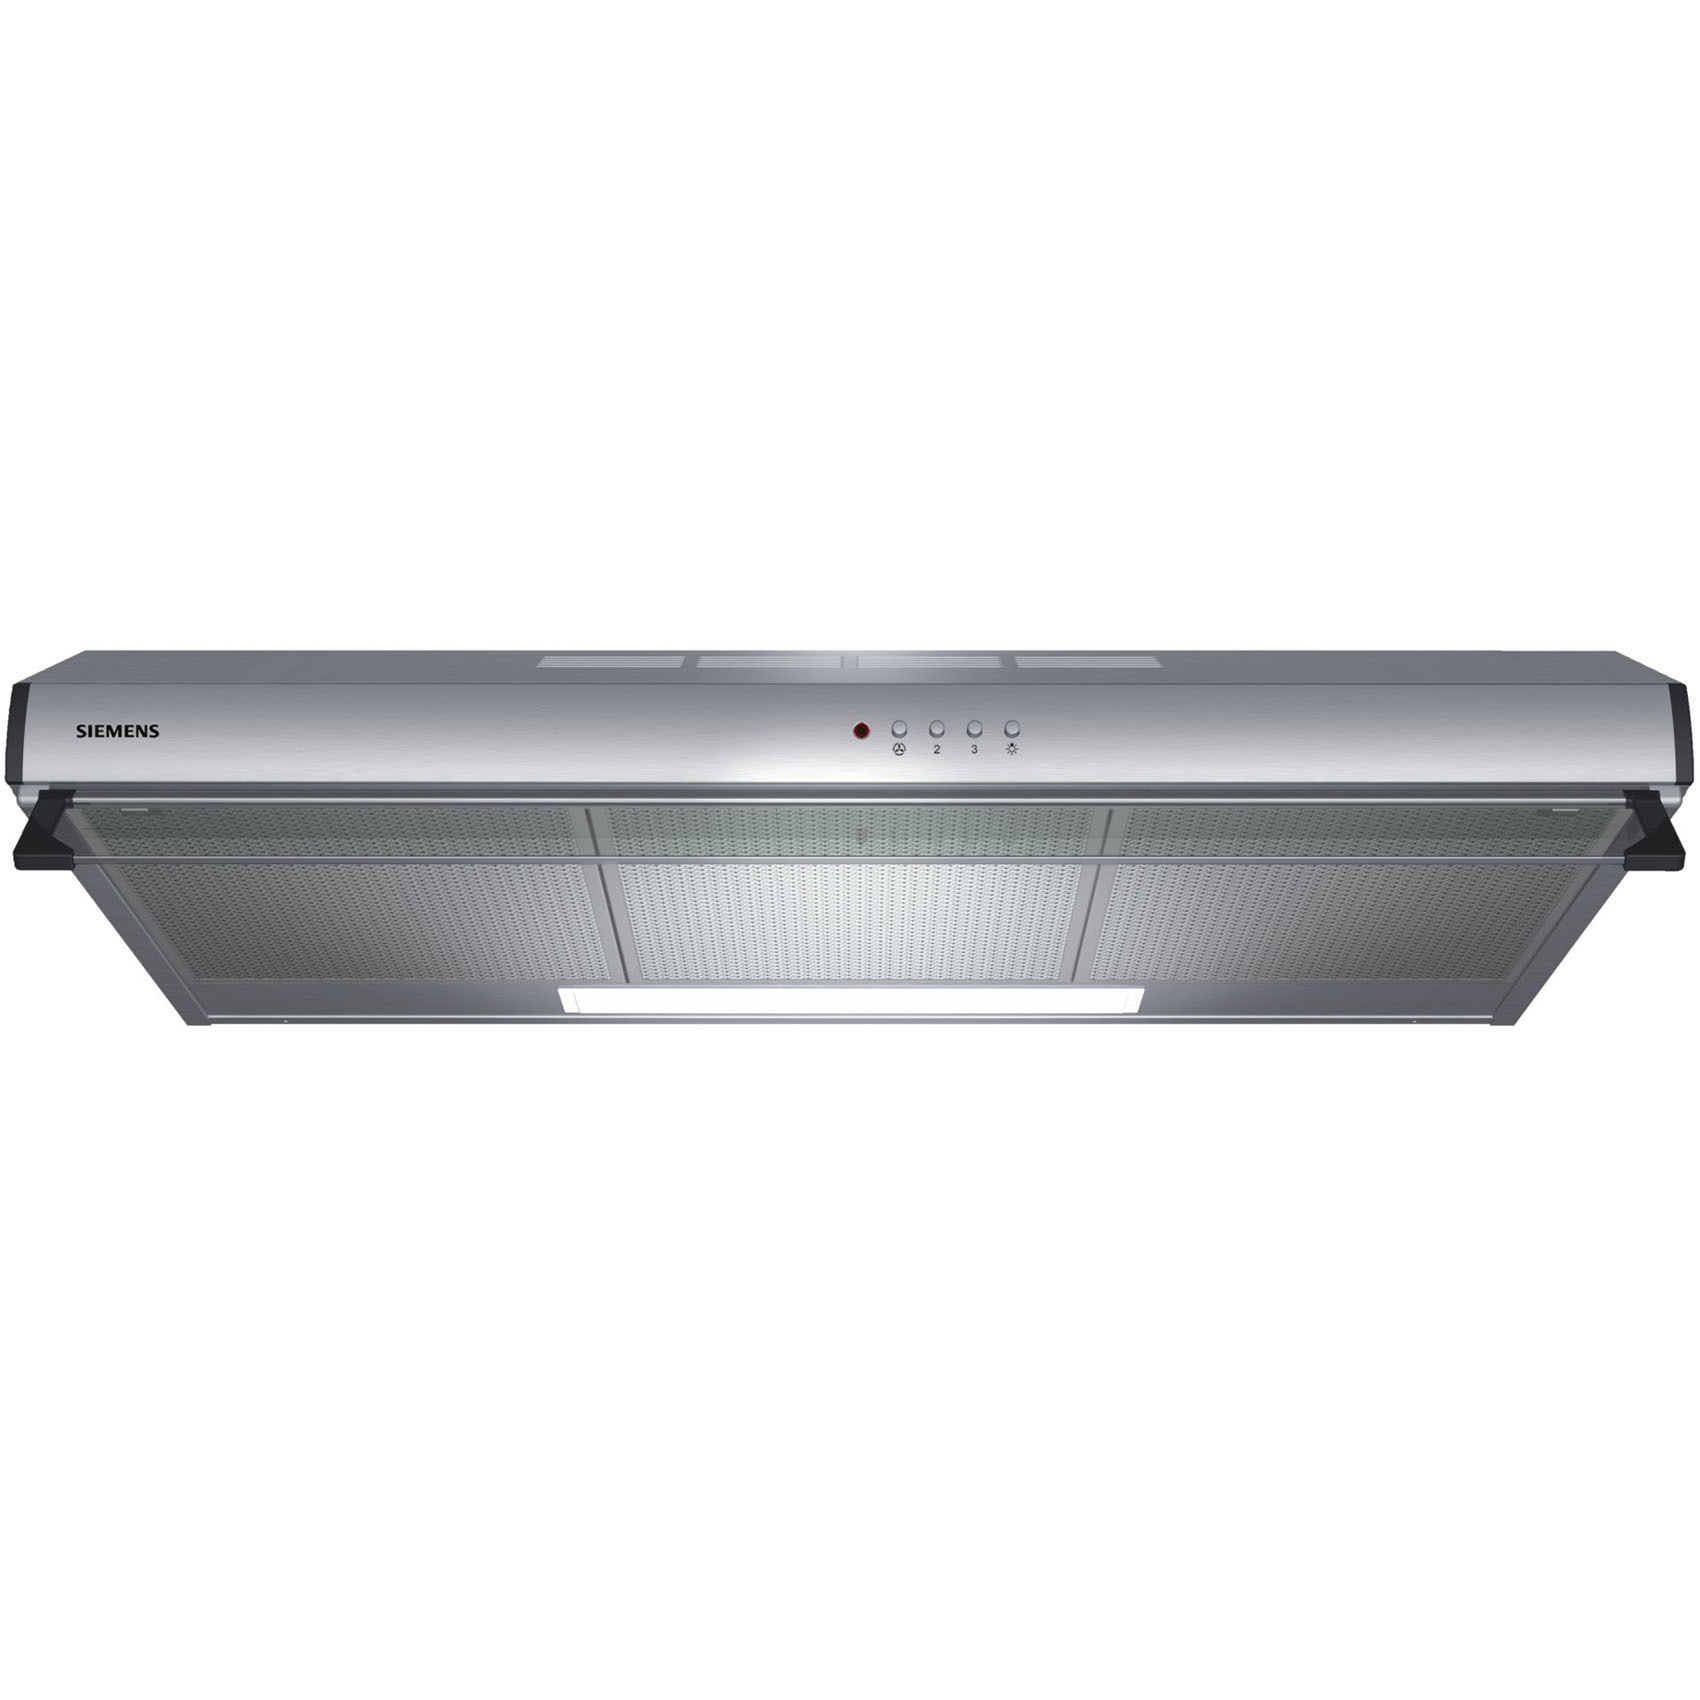 SIEMENS BUILT-IN HOOD LU26150GB 90C